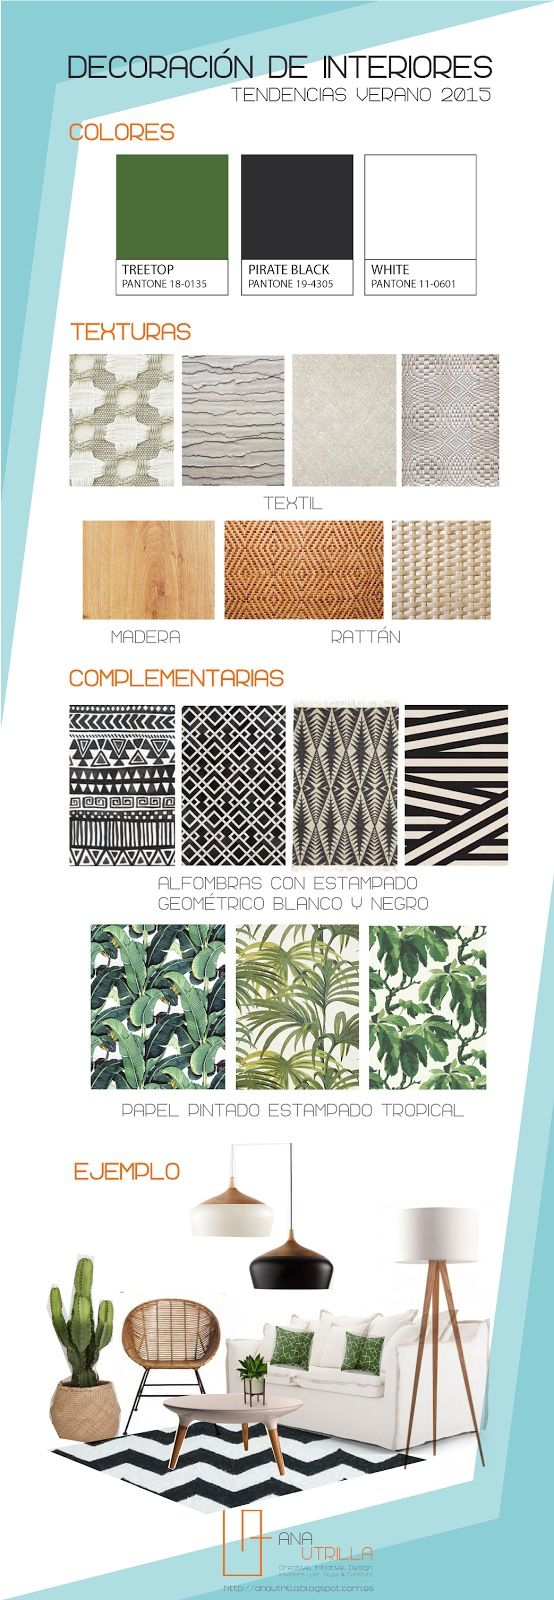 Decorar espacios con tendencia tropical 2015                                                                                                                                                                                 More